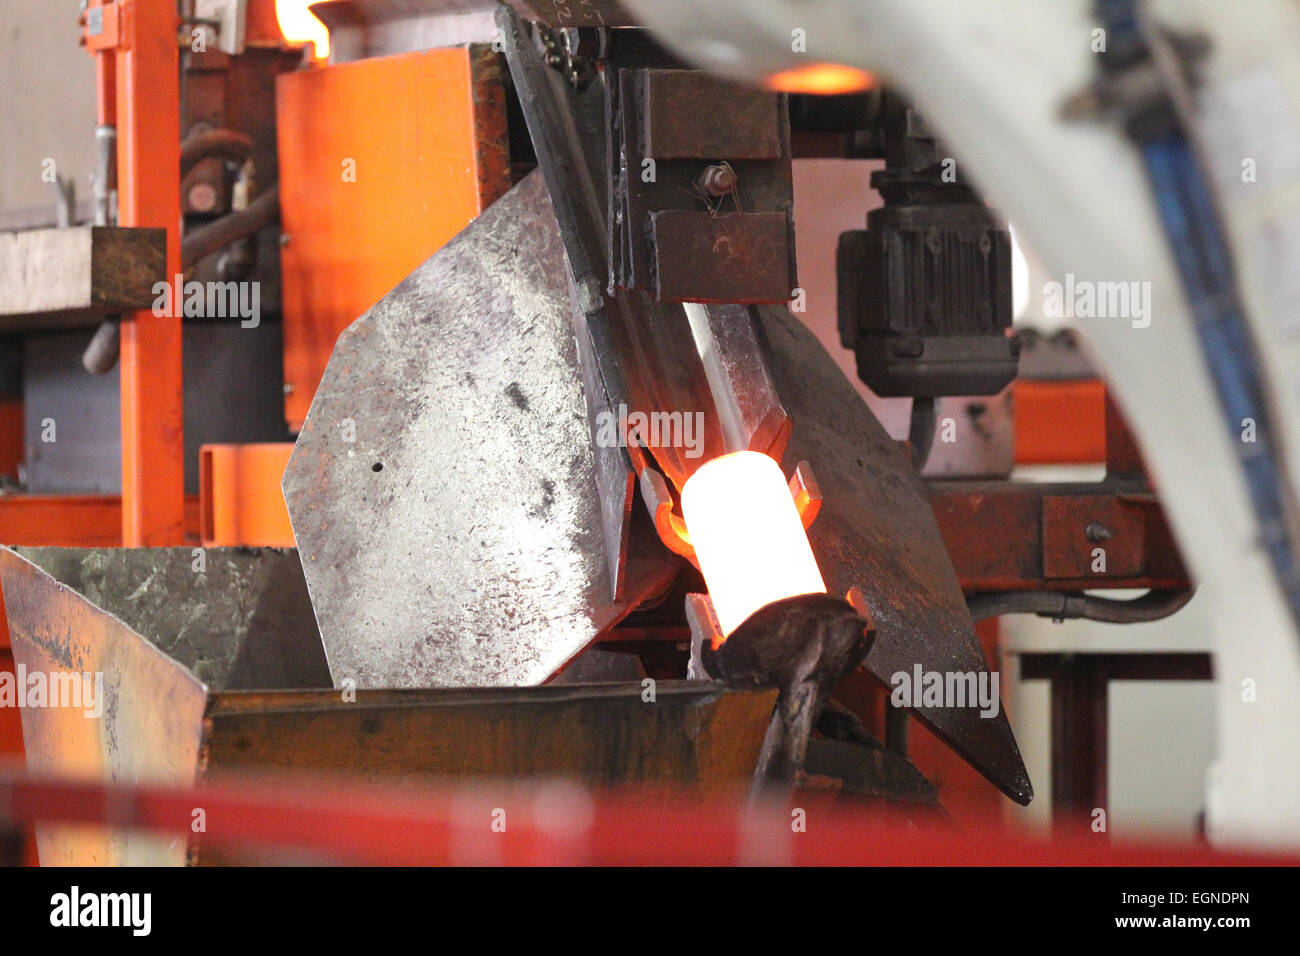 positioning unit and supplying the heated round billet - Stock Image